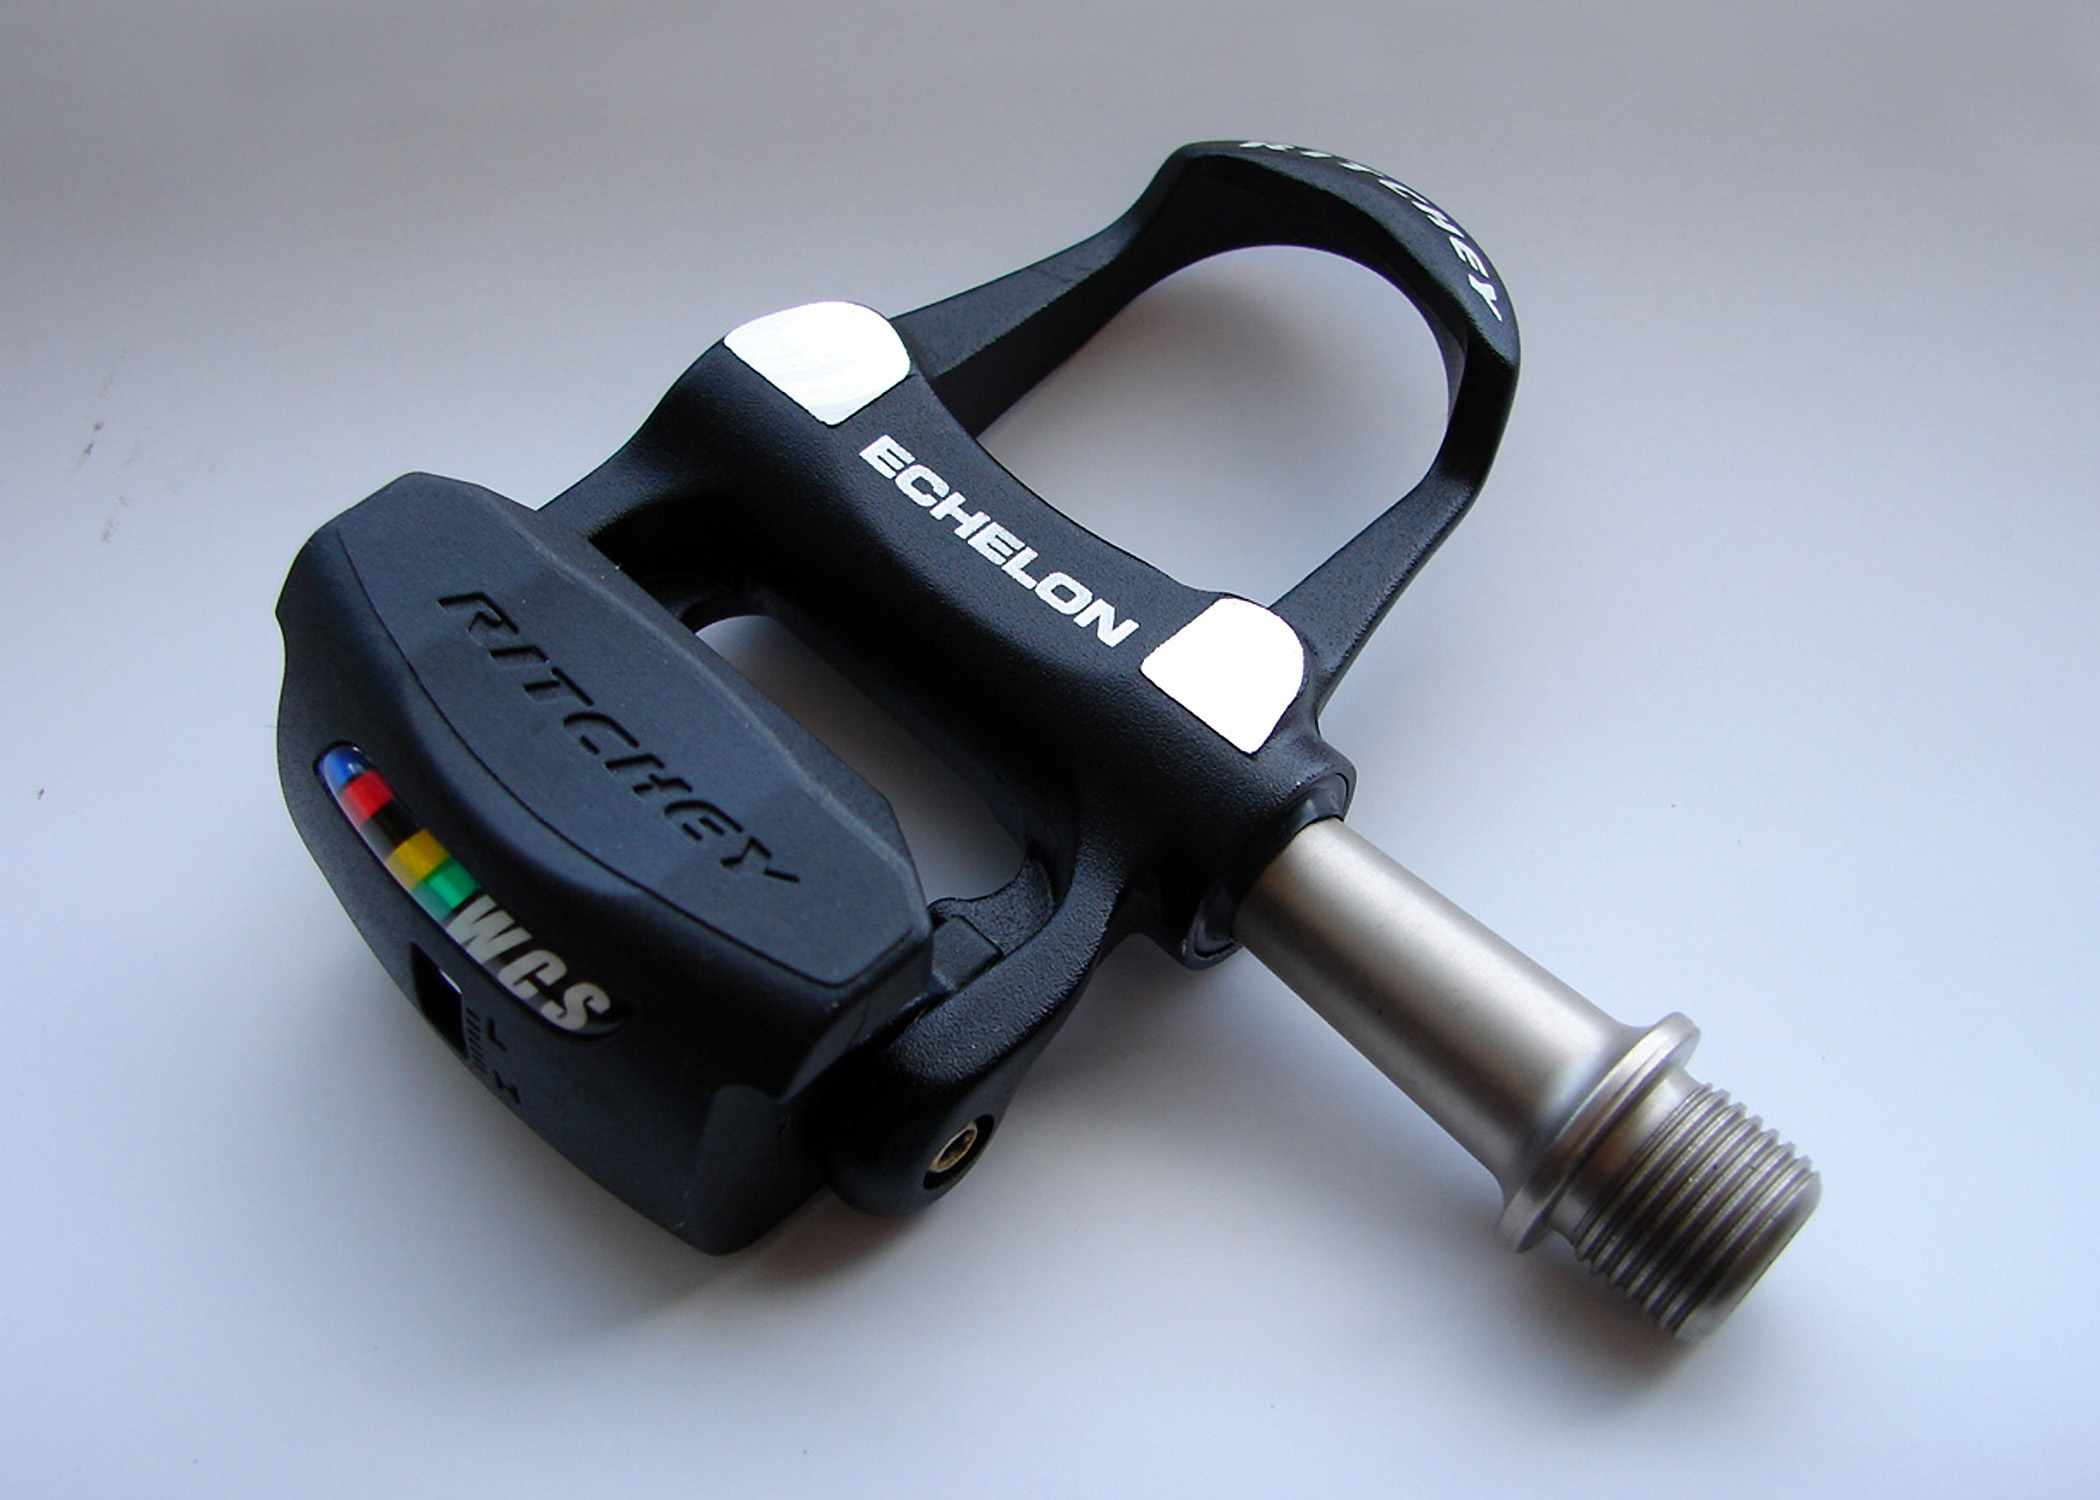 Ritchey's 233g WCS Echelon low-profile road pedals.